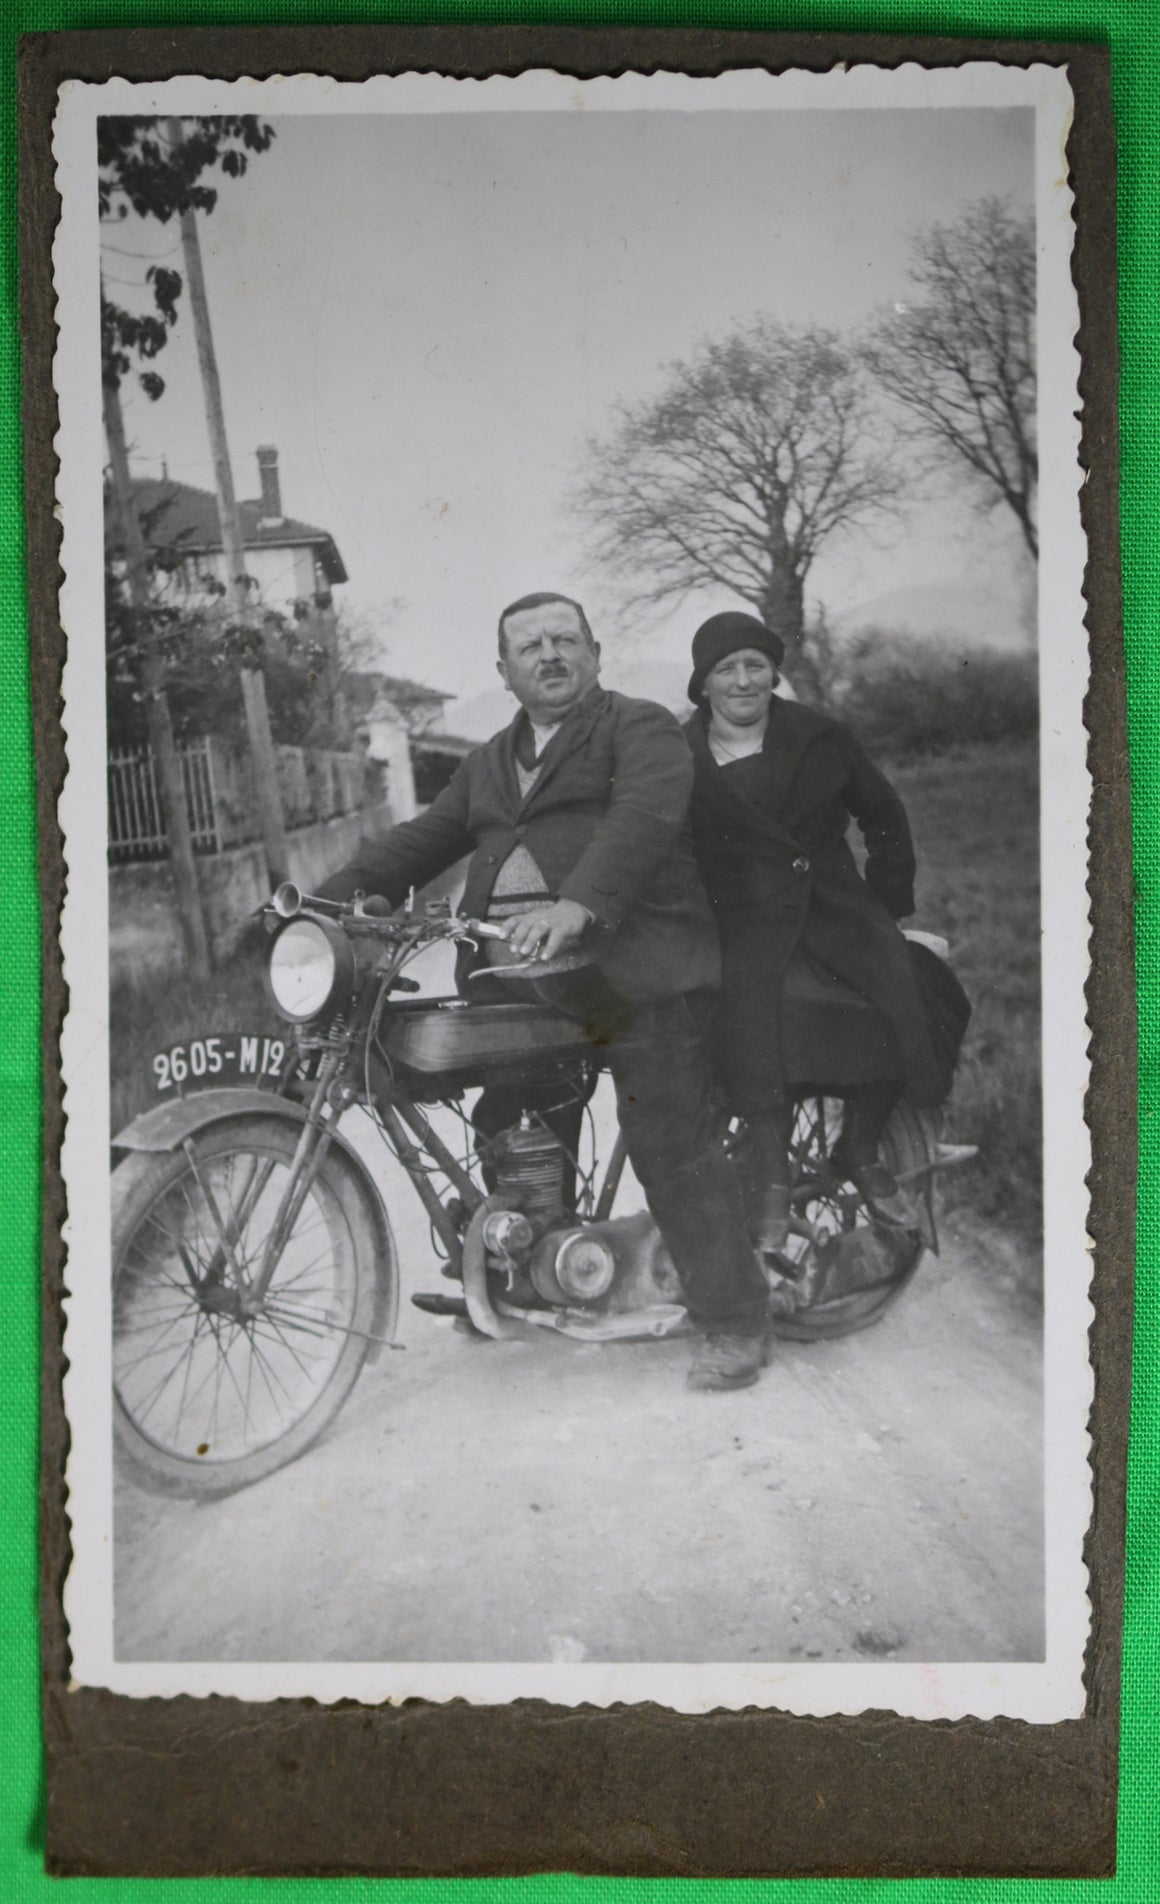 Vintage photo of man and woman on motorcycle @1920s